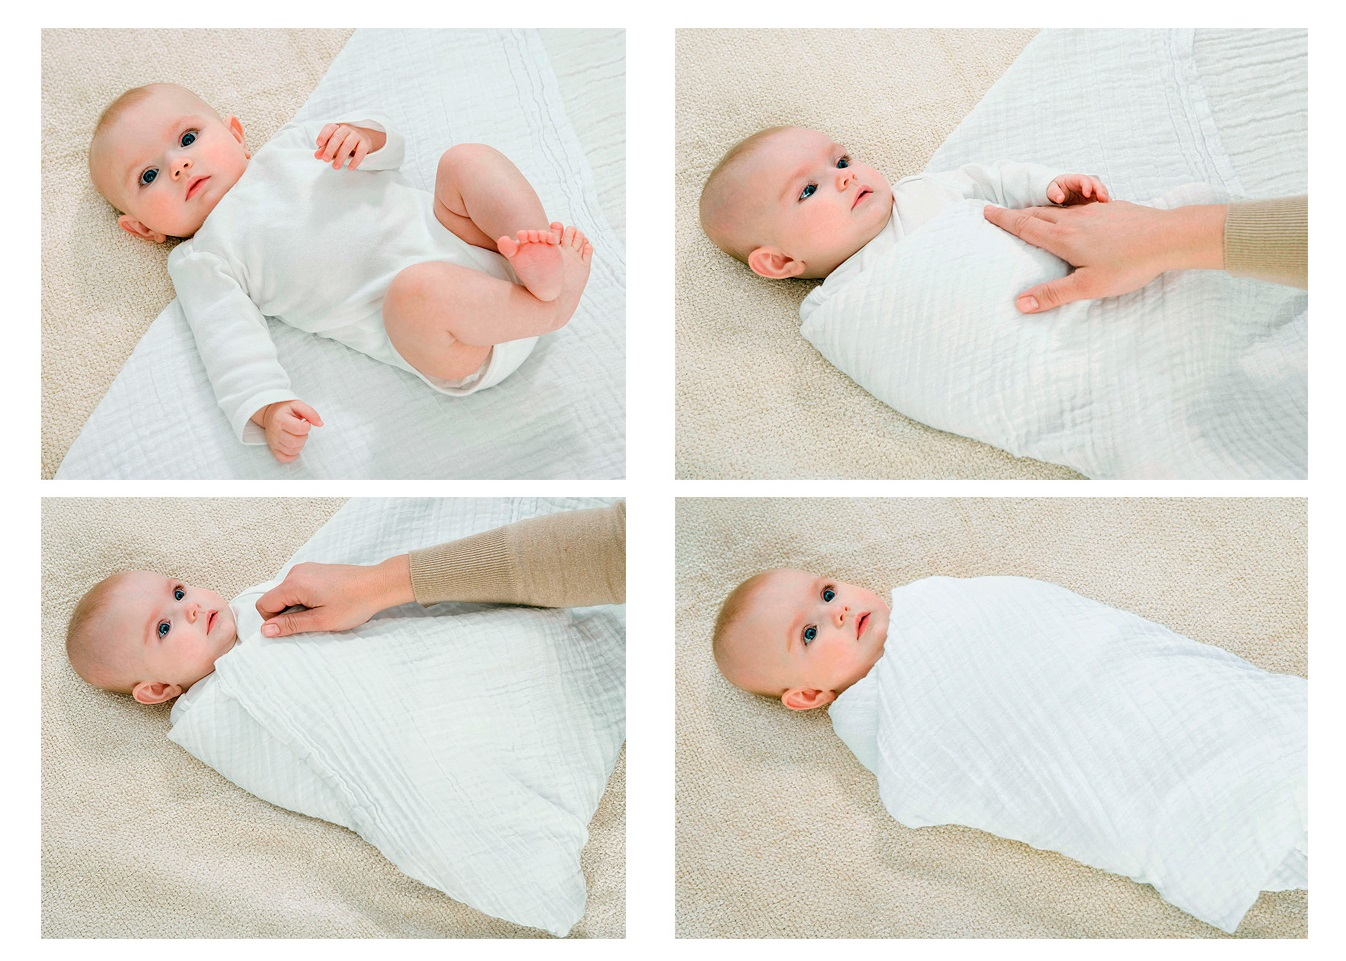 Swaddling baby - how to swaddle